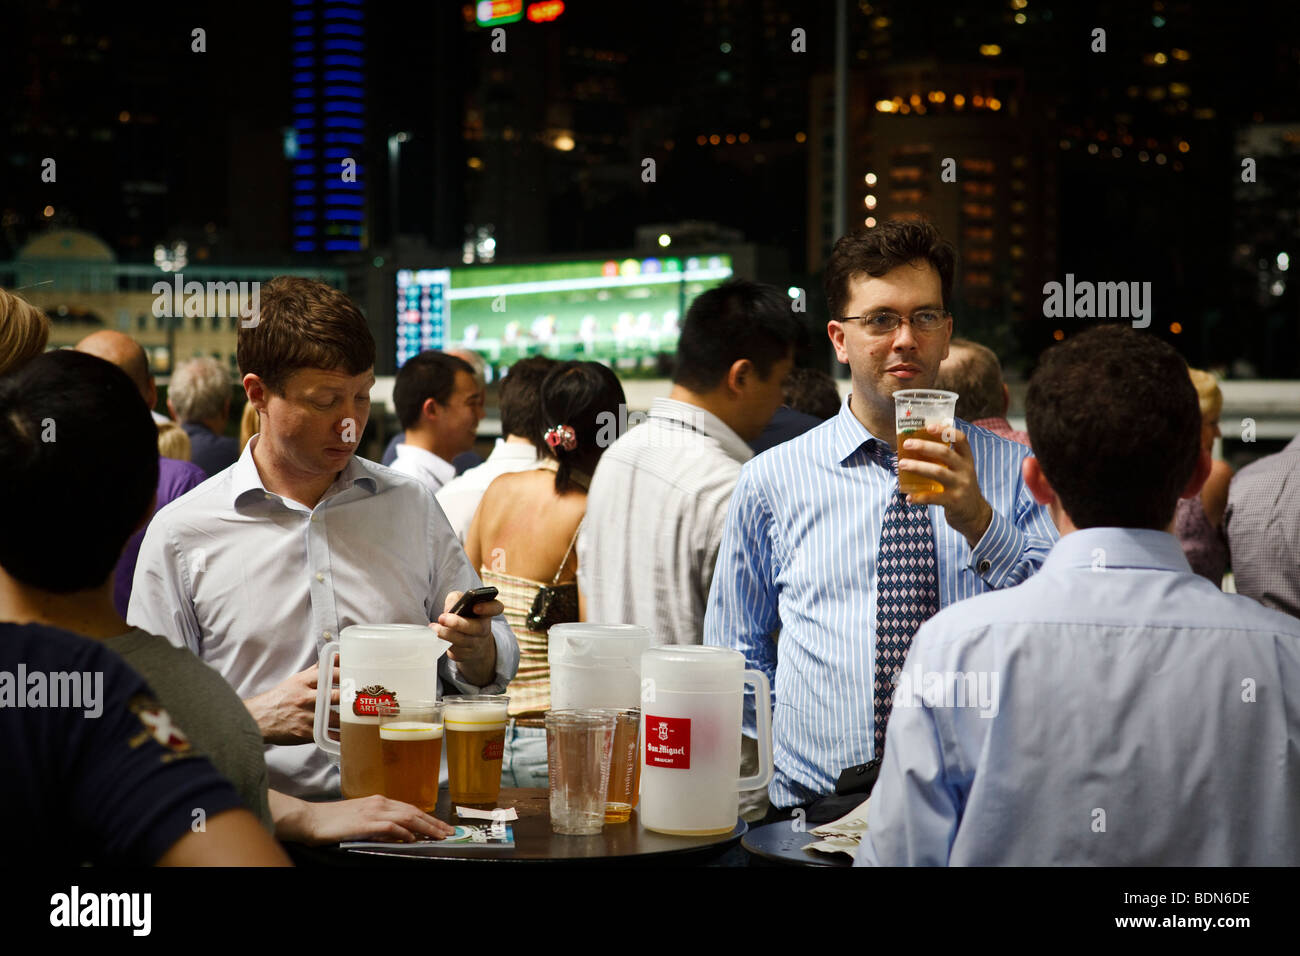 Expat punters enjoy a night out at a night horse racing event at the Happy Valley race course in Hong Kong. - Stock Image